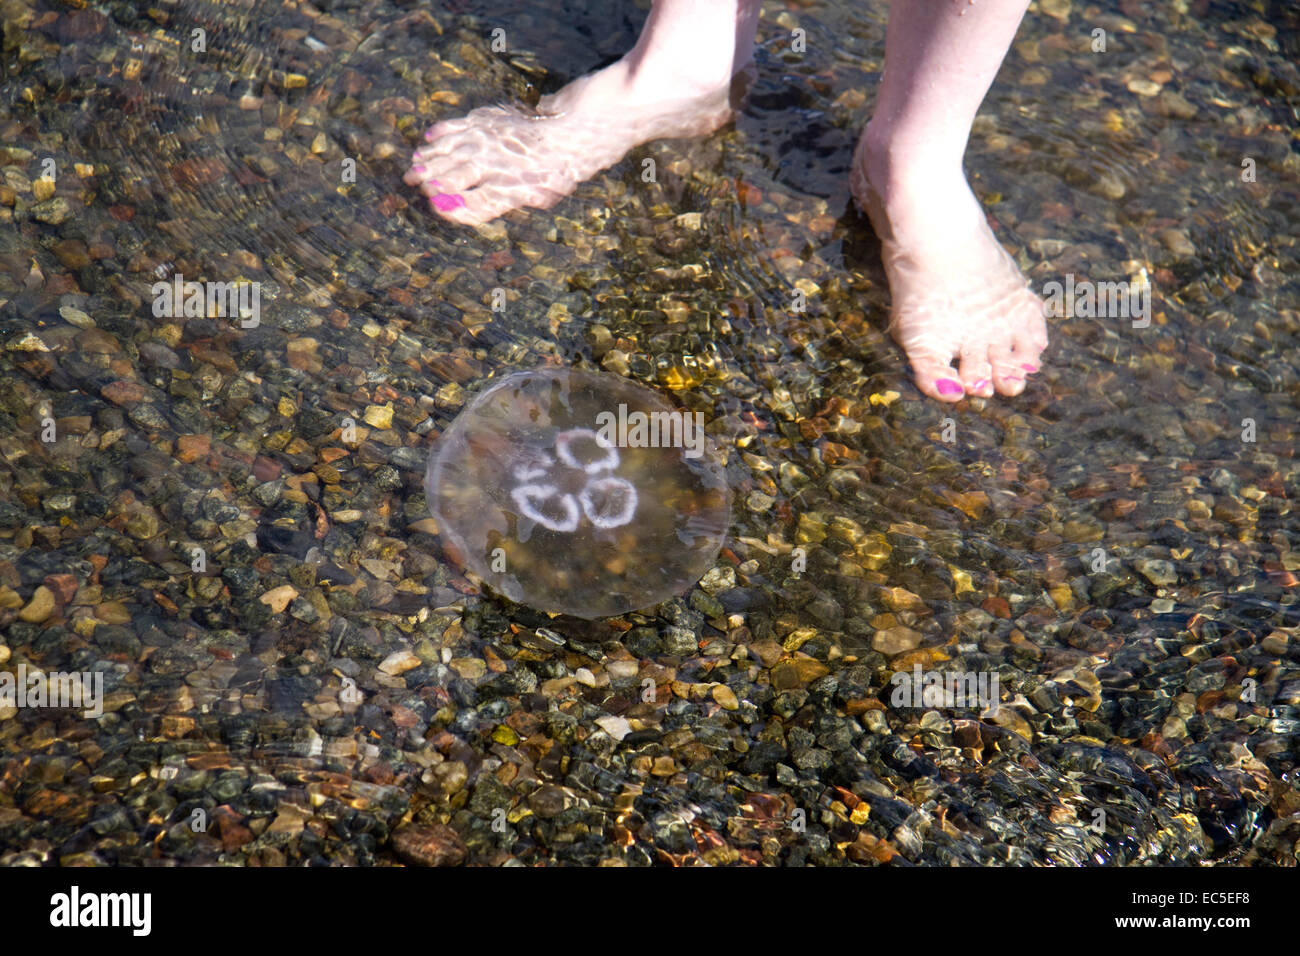 bare feet in front of jellyfish Stock Photo